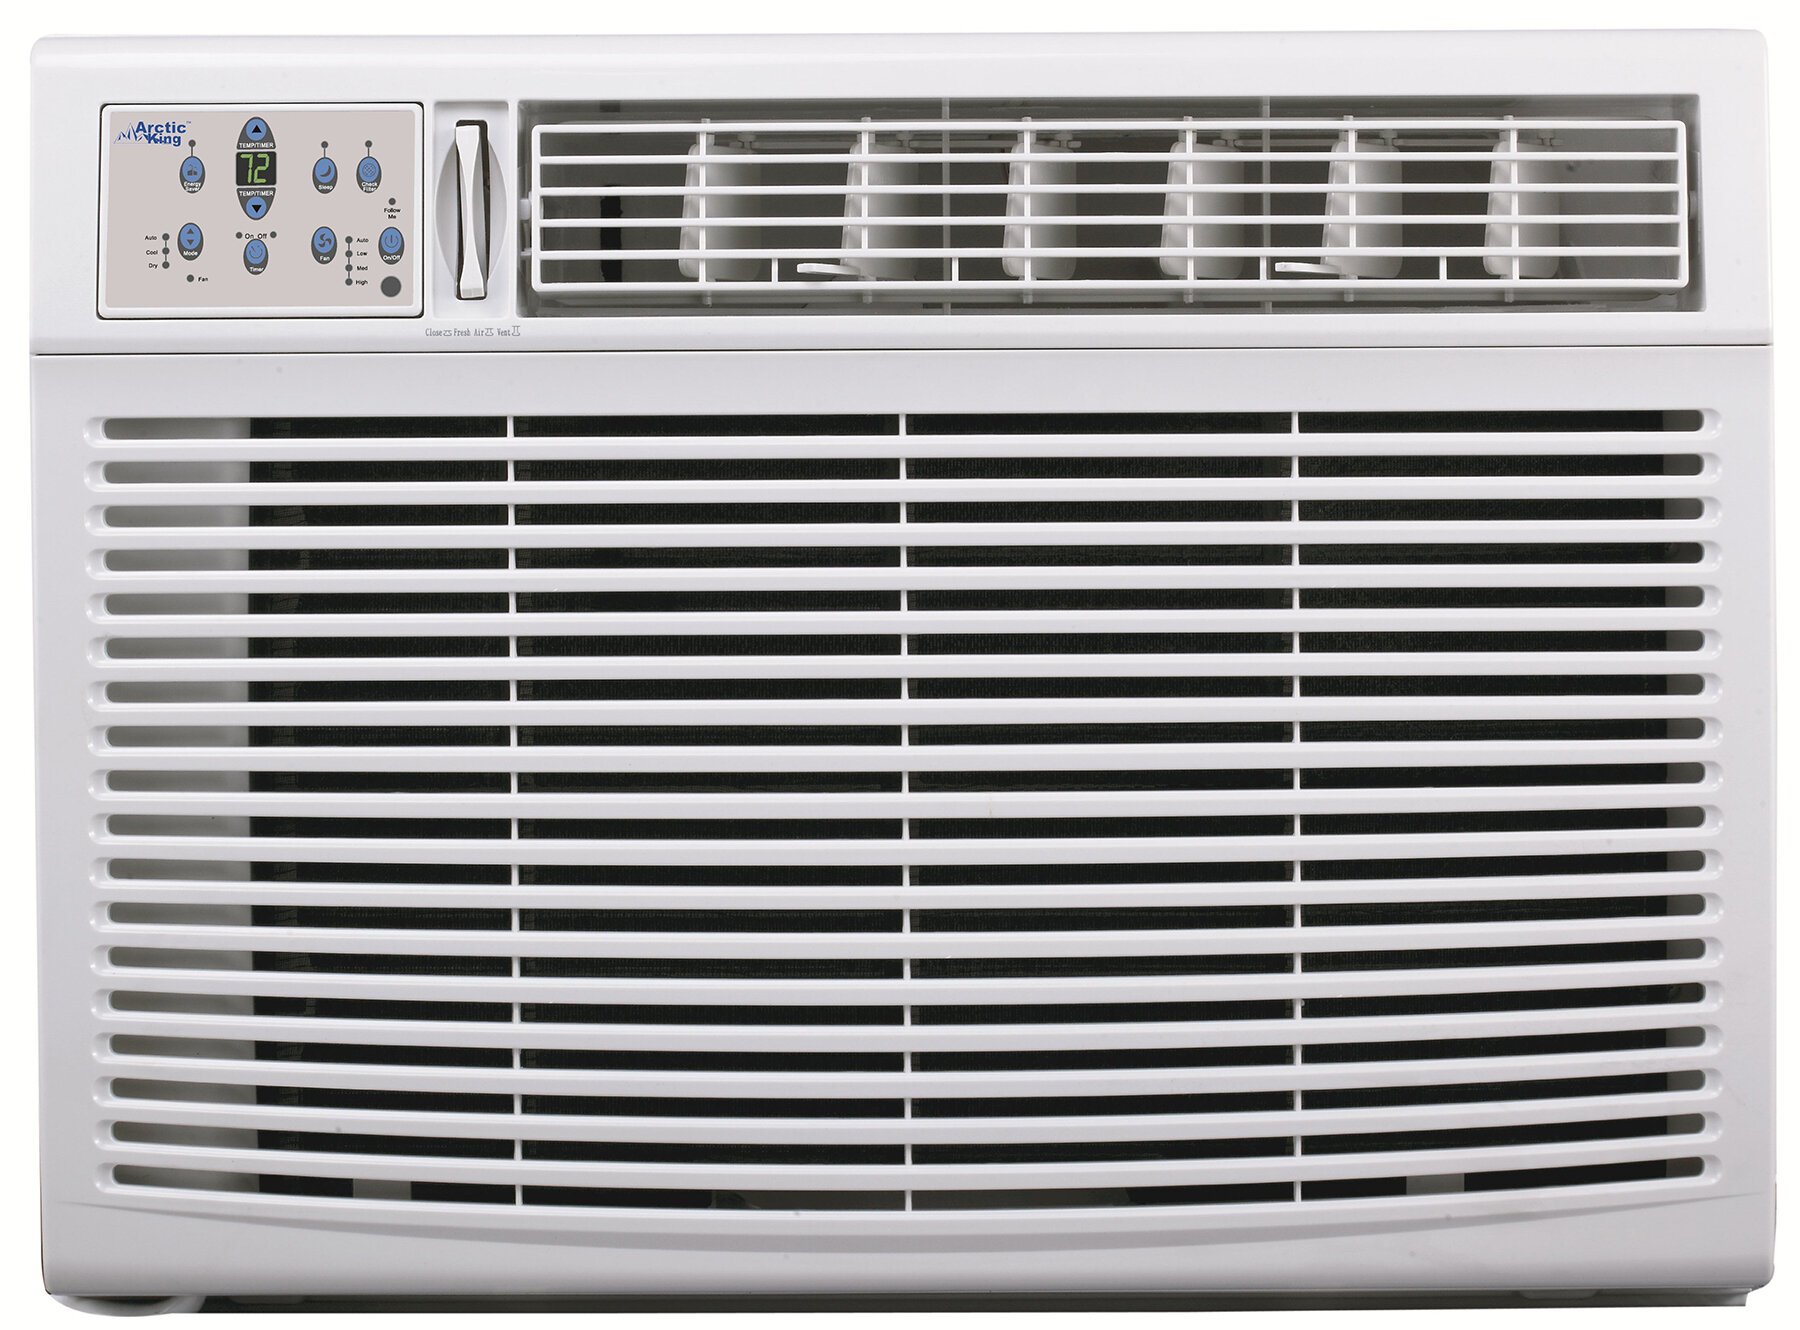 Arctic King 25000 Btu Window Air Conditioner With Remote Reviews Emerson Large Artic Wayfair